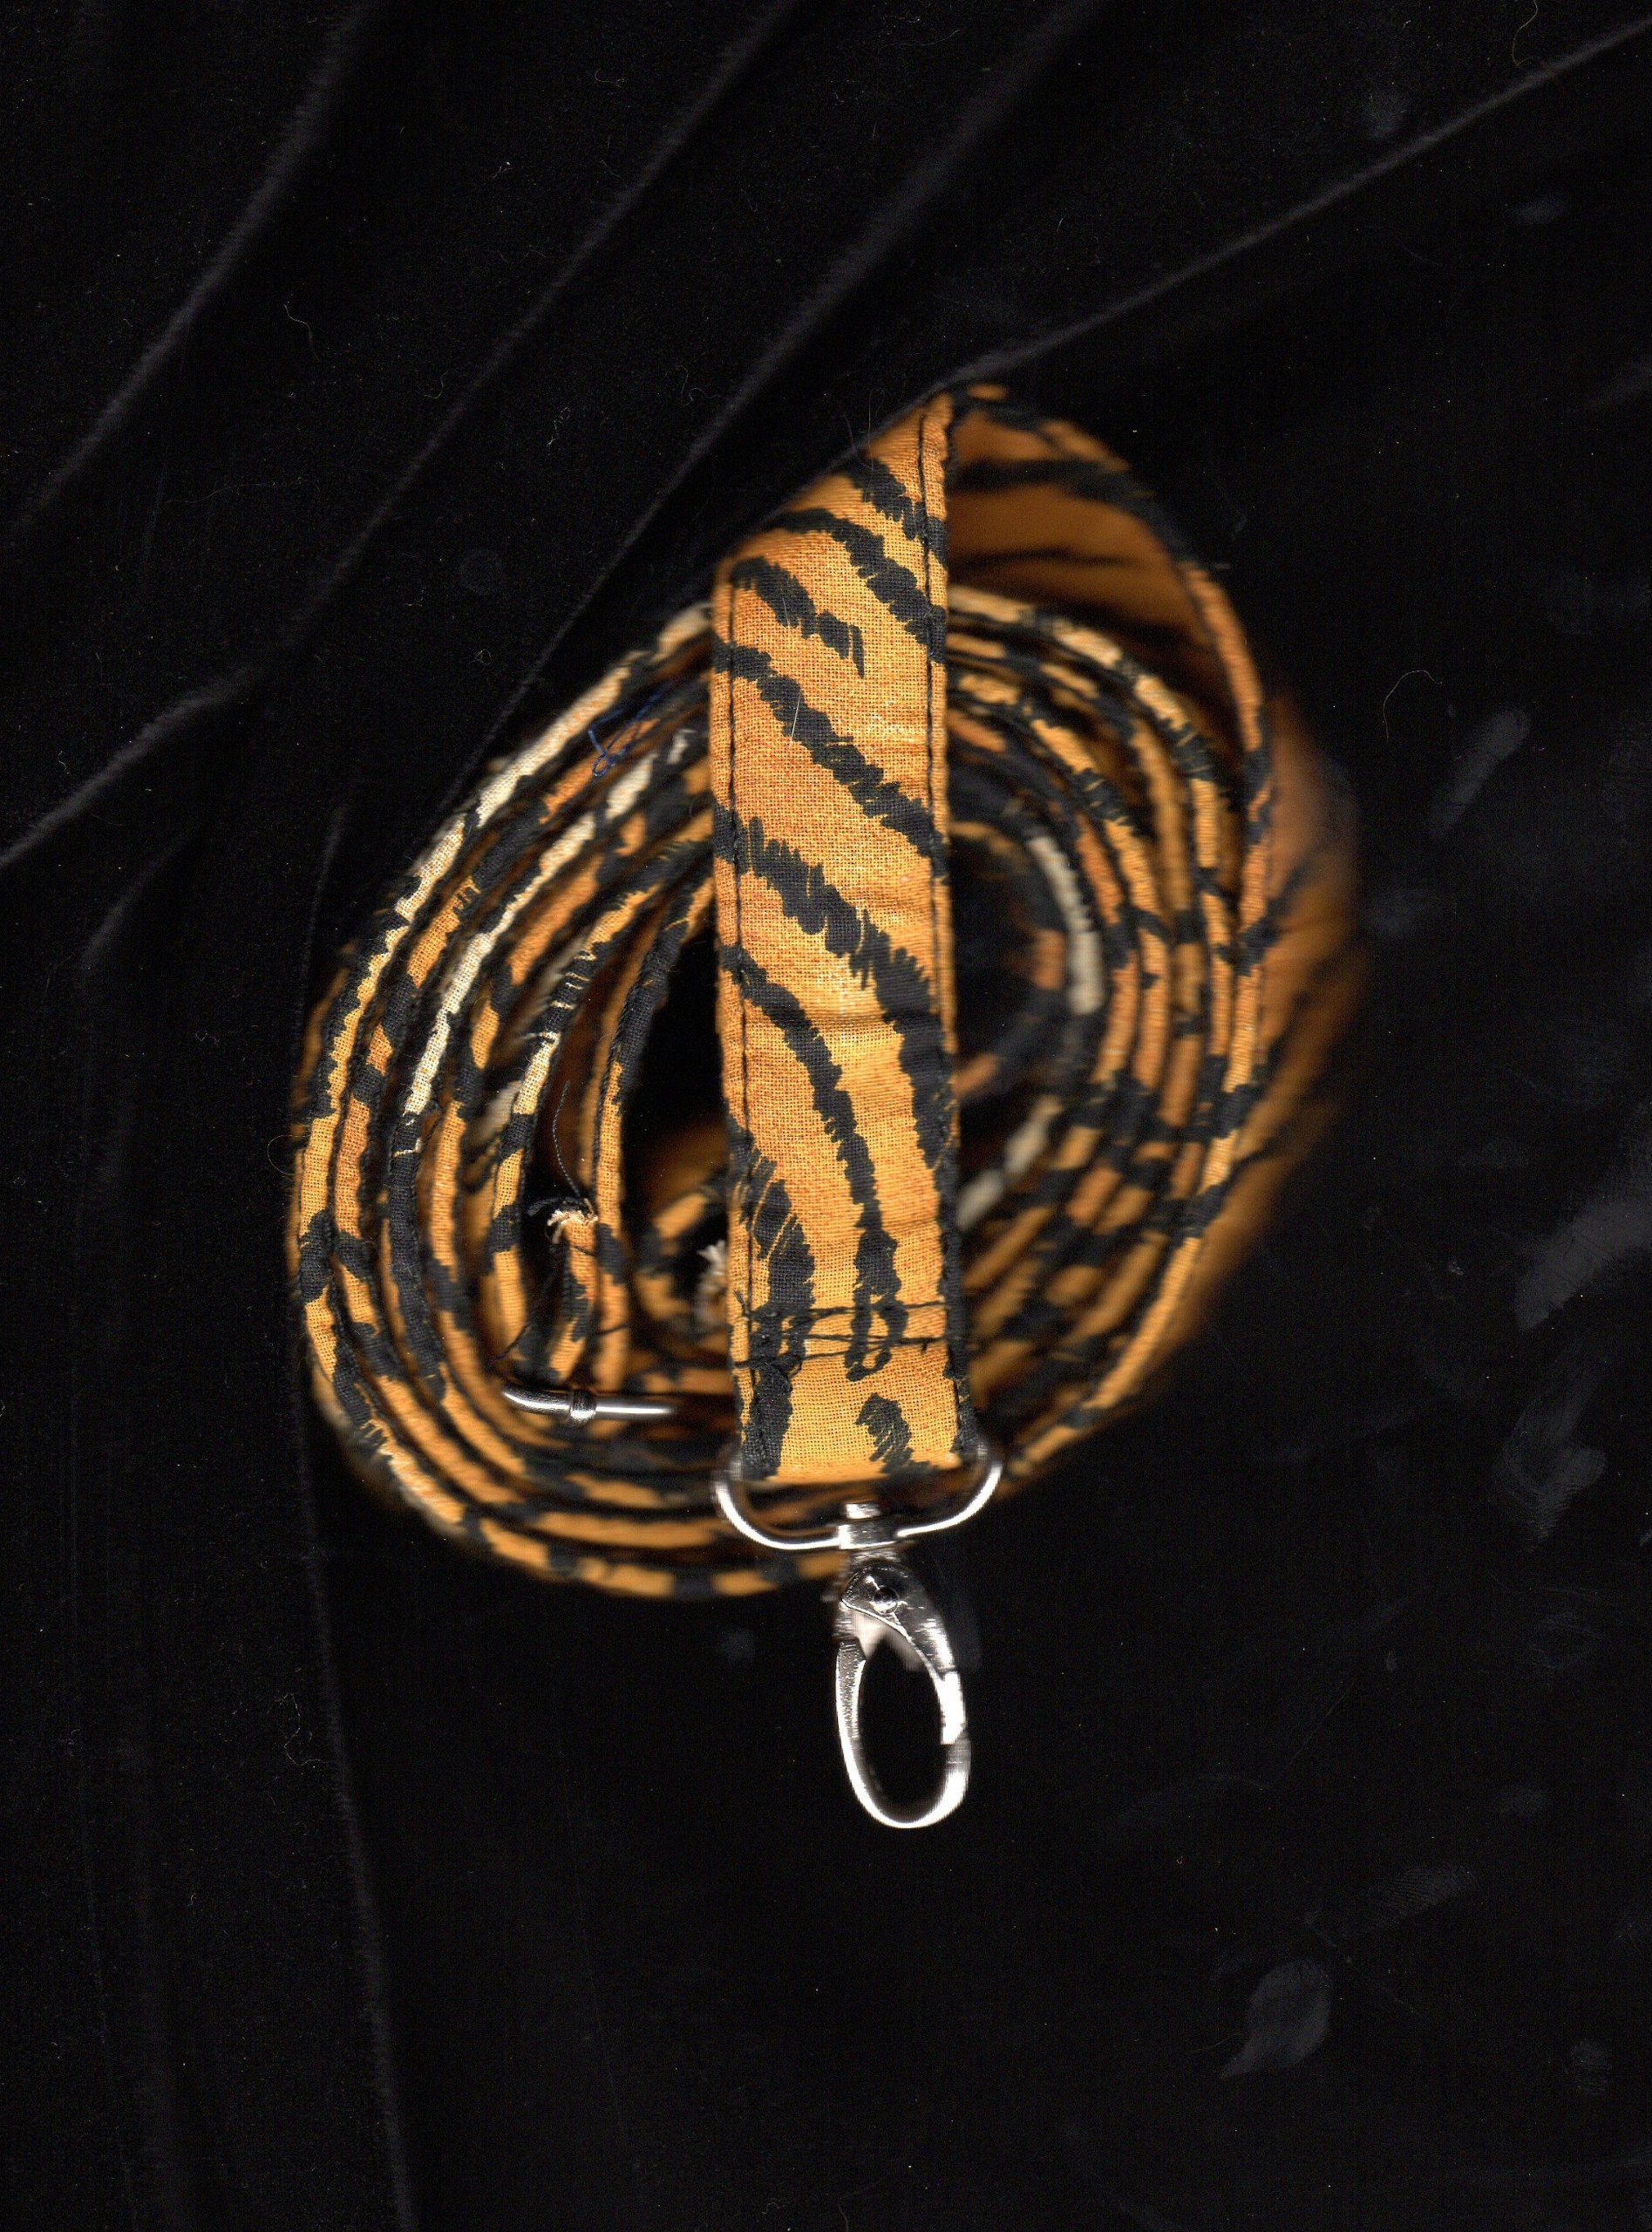 Kitty Holster Leash 1/2' X 6' - Matches the Tiger Kitty Holster